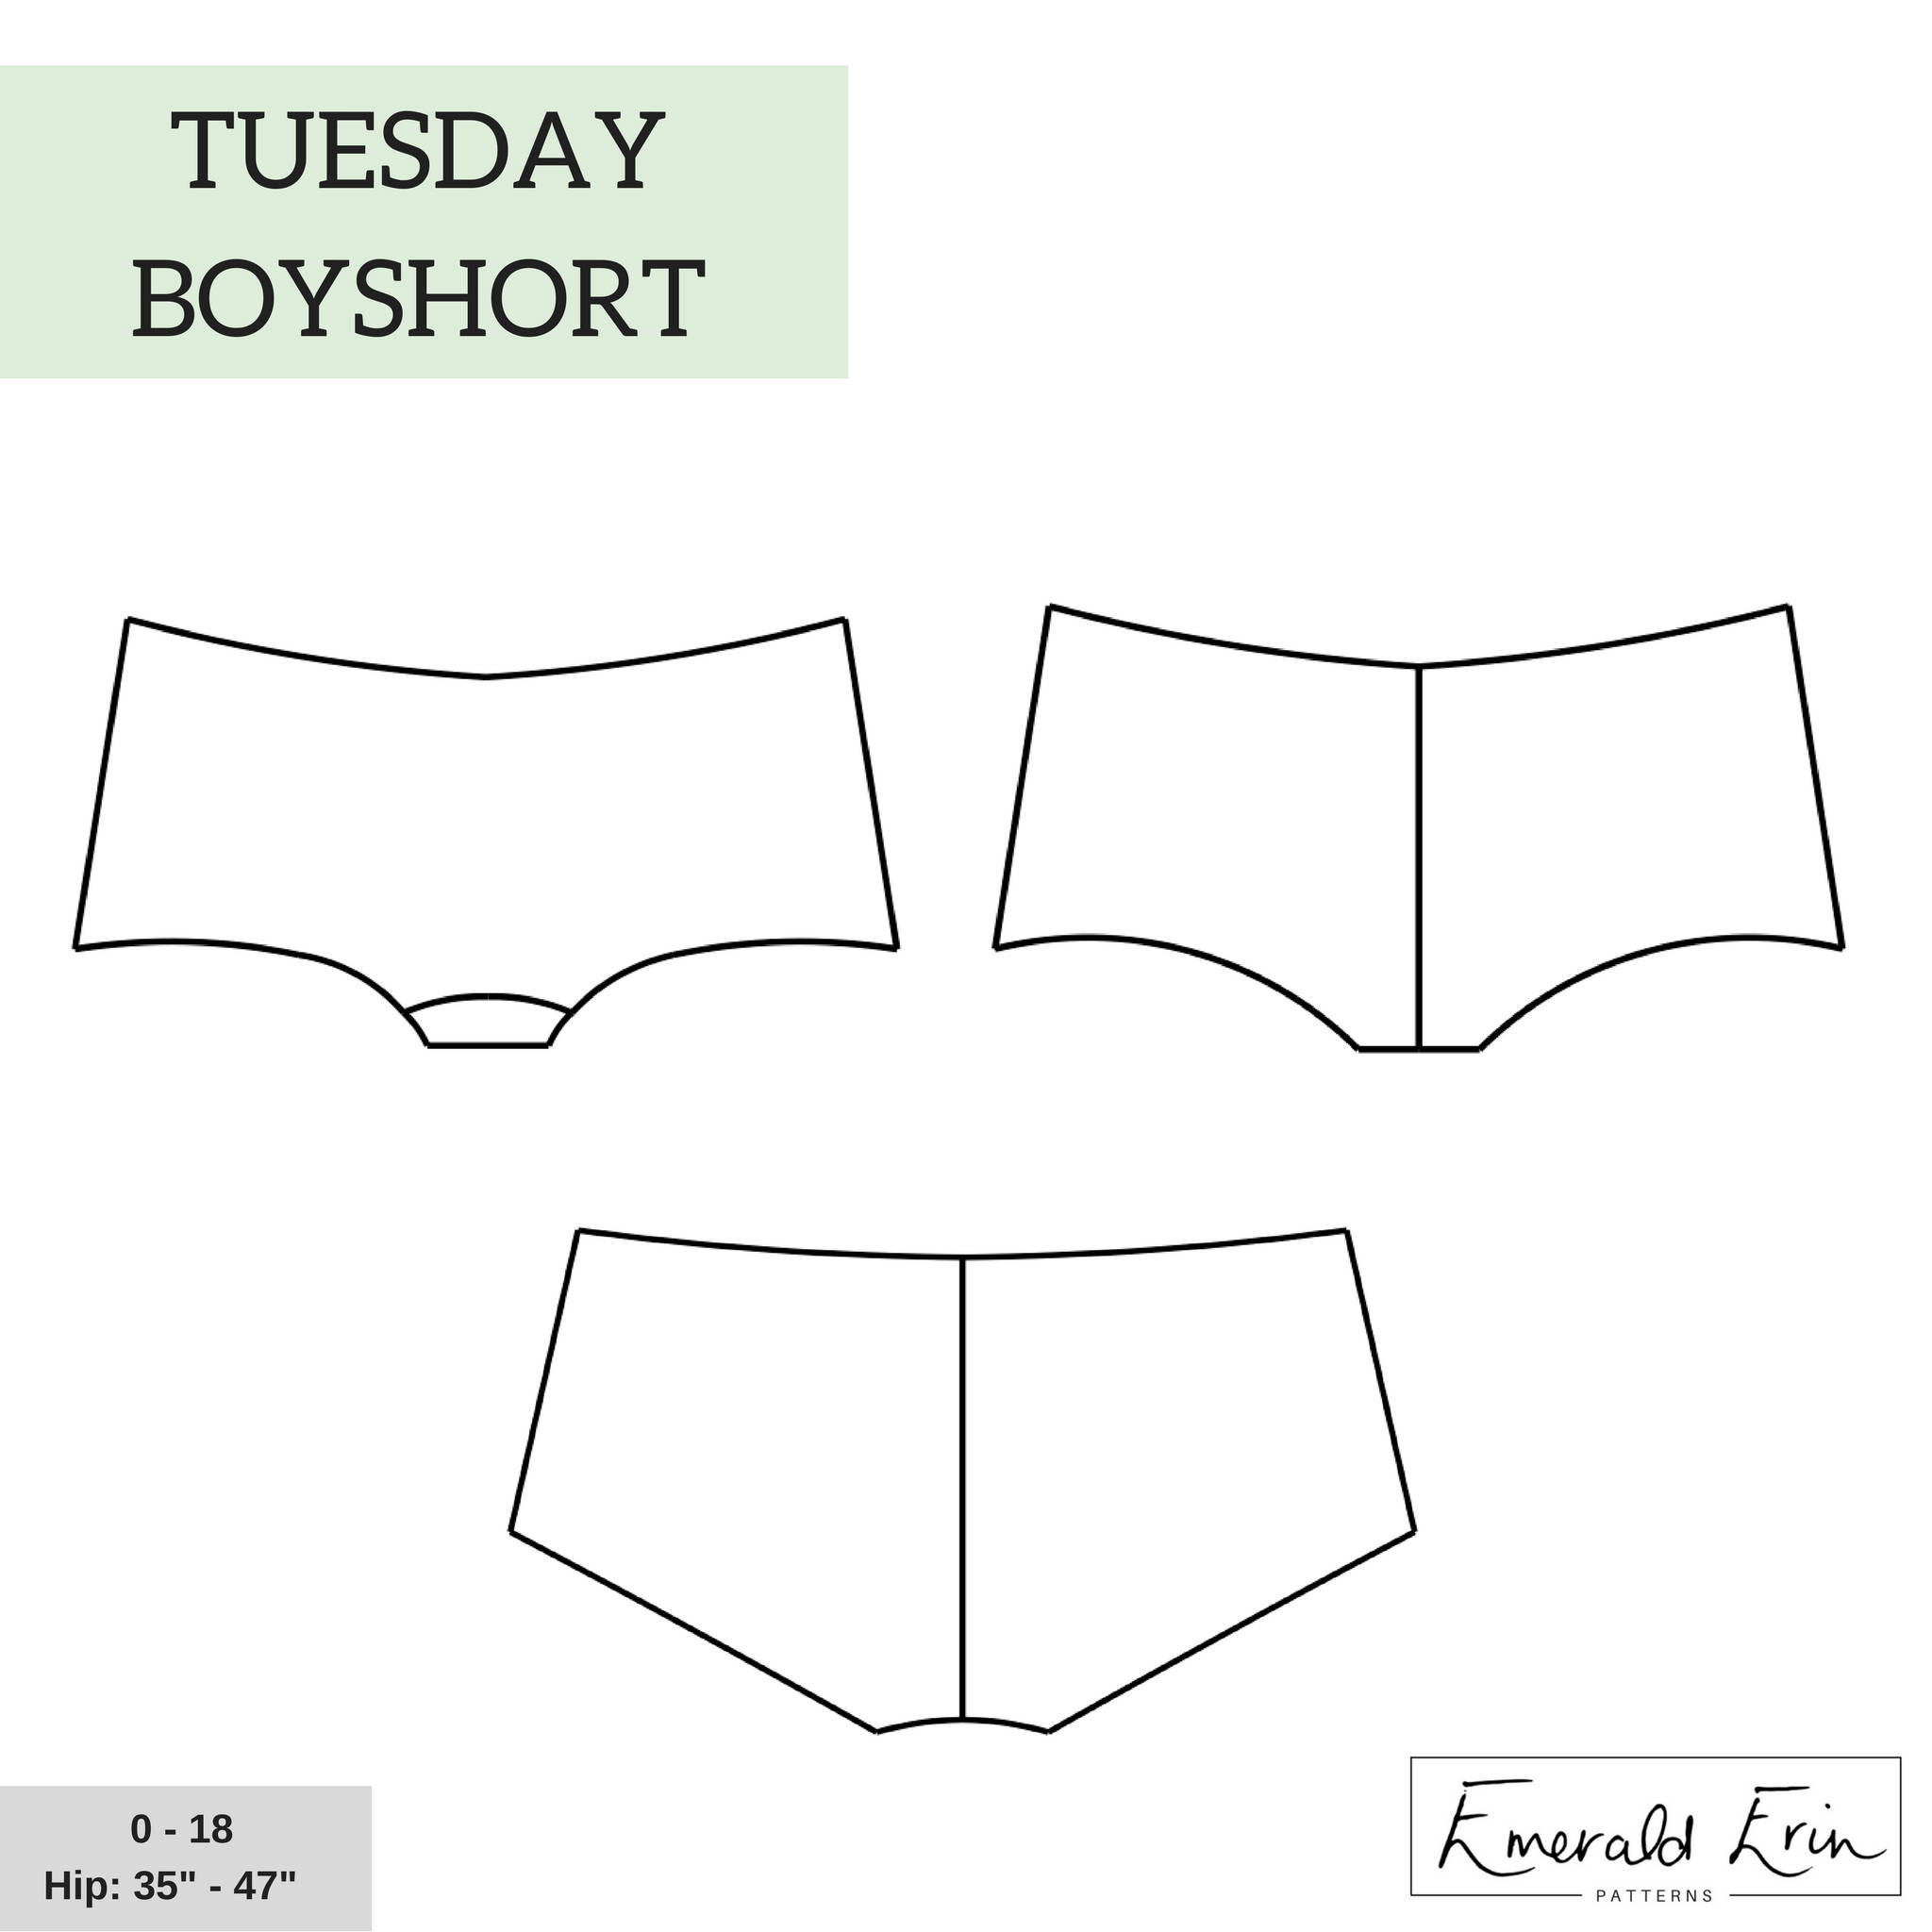 Tuesday Boyshort by Emerald Erin